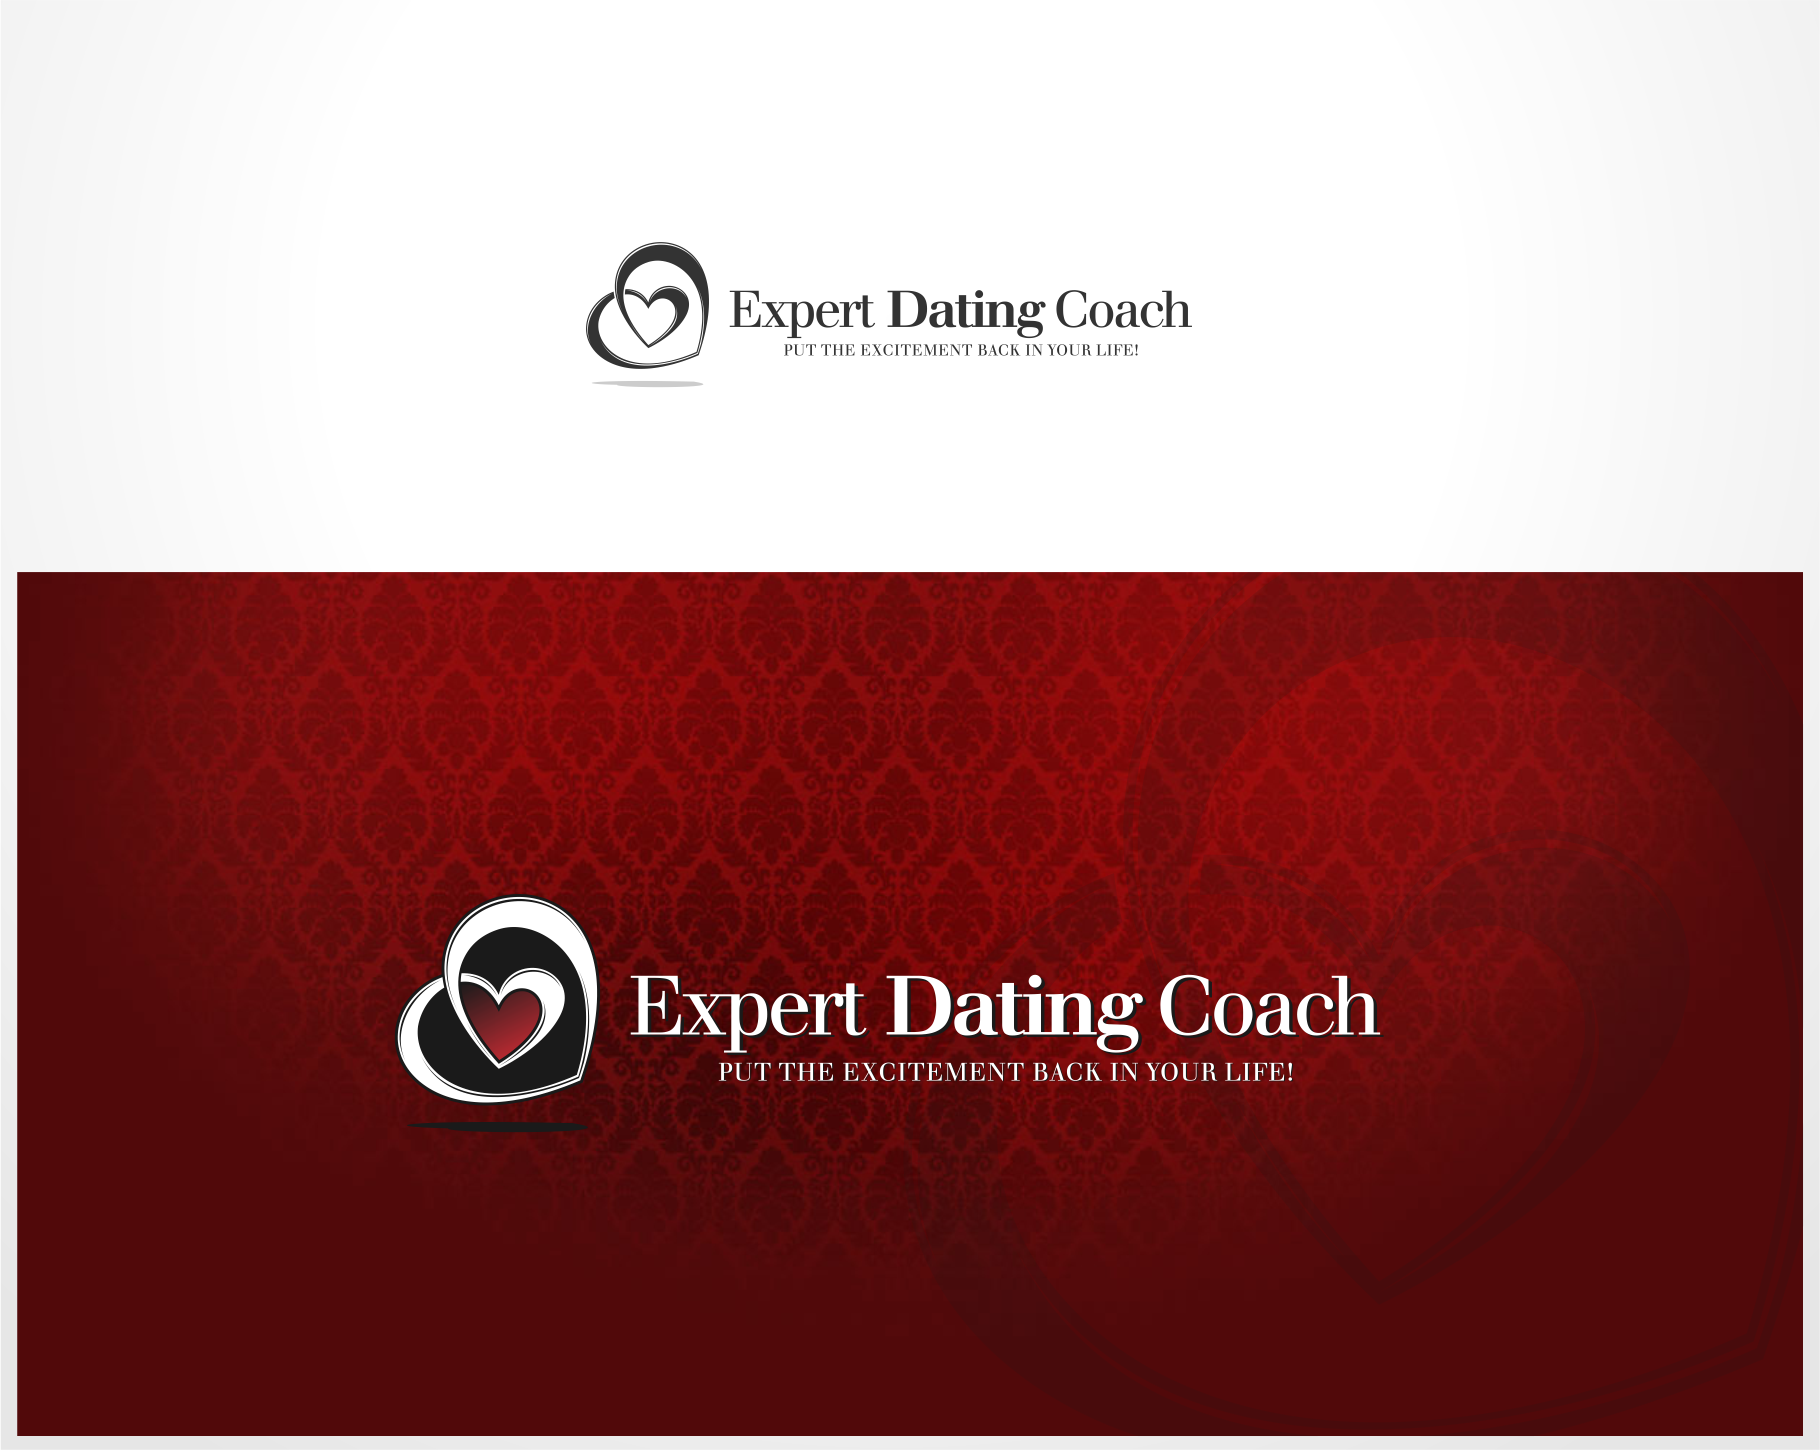 New logo wanted for Expert Dating Coach